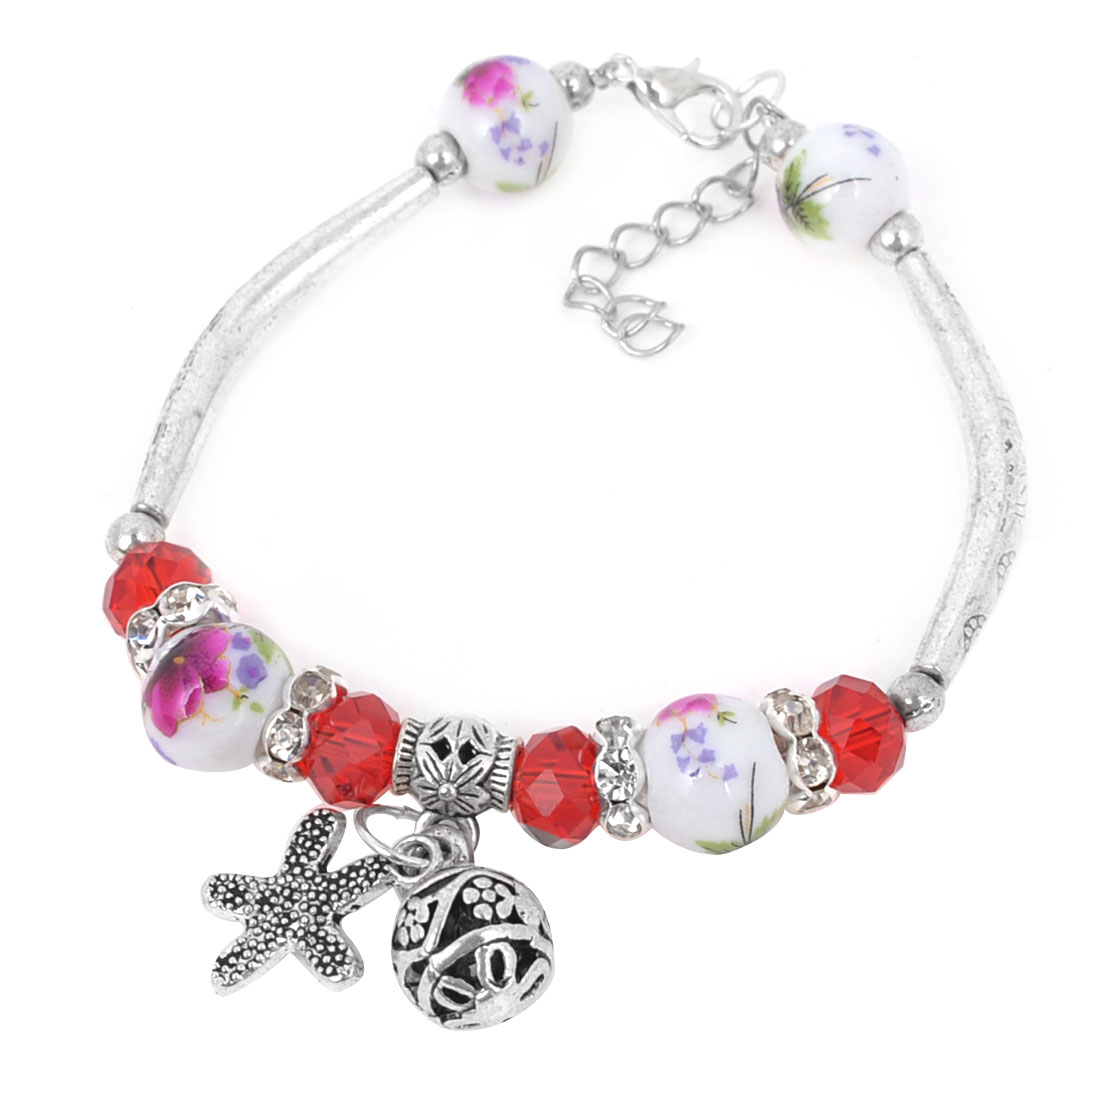 Lady Wrist Decor Faux Red Crystal Linked Round Bead Ceramic Bracelet Silver Tone